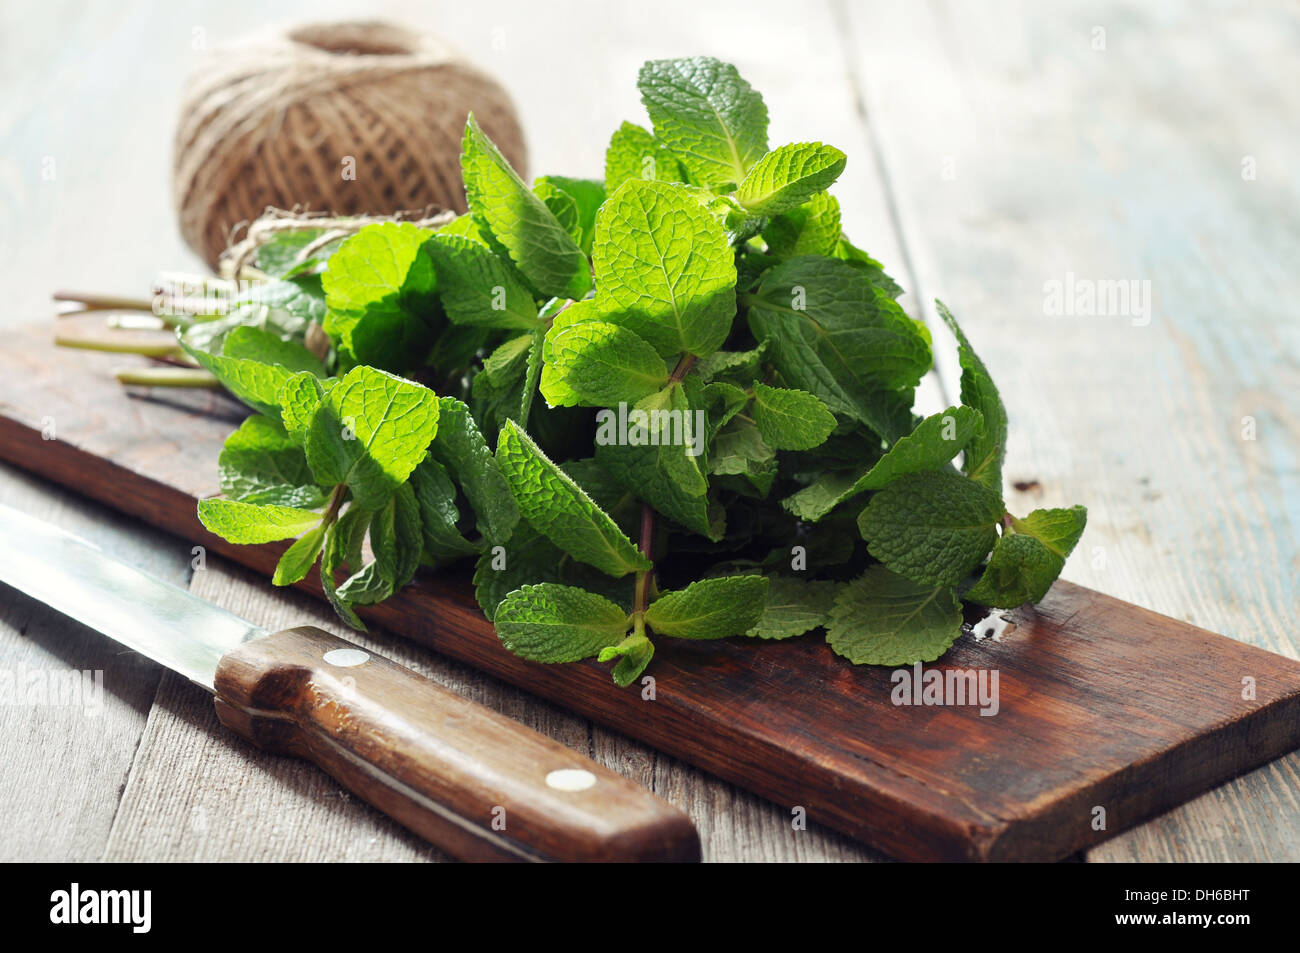 Green mint leaves with lime on wooden background - Stock Image